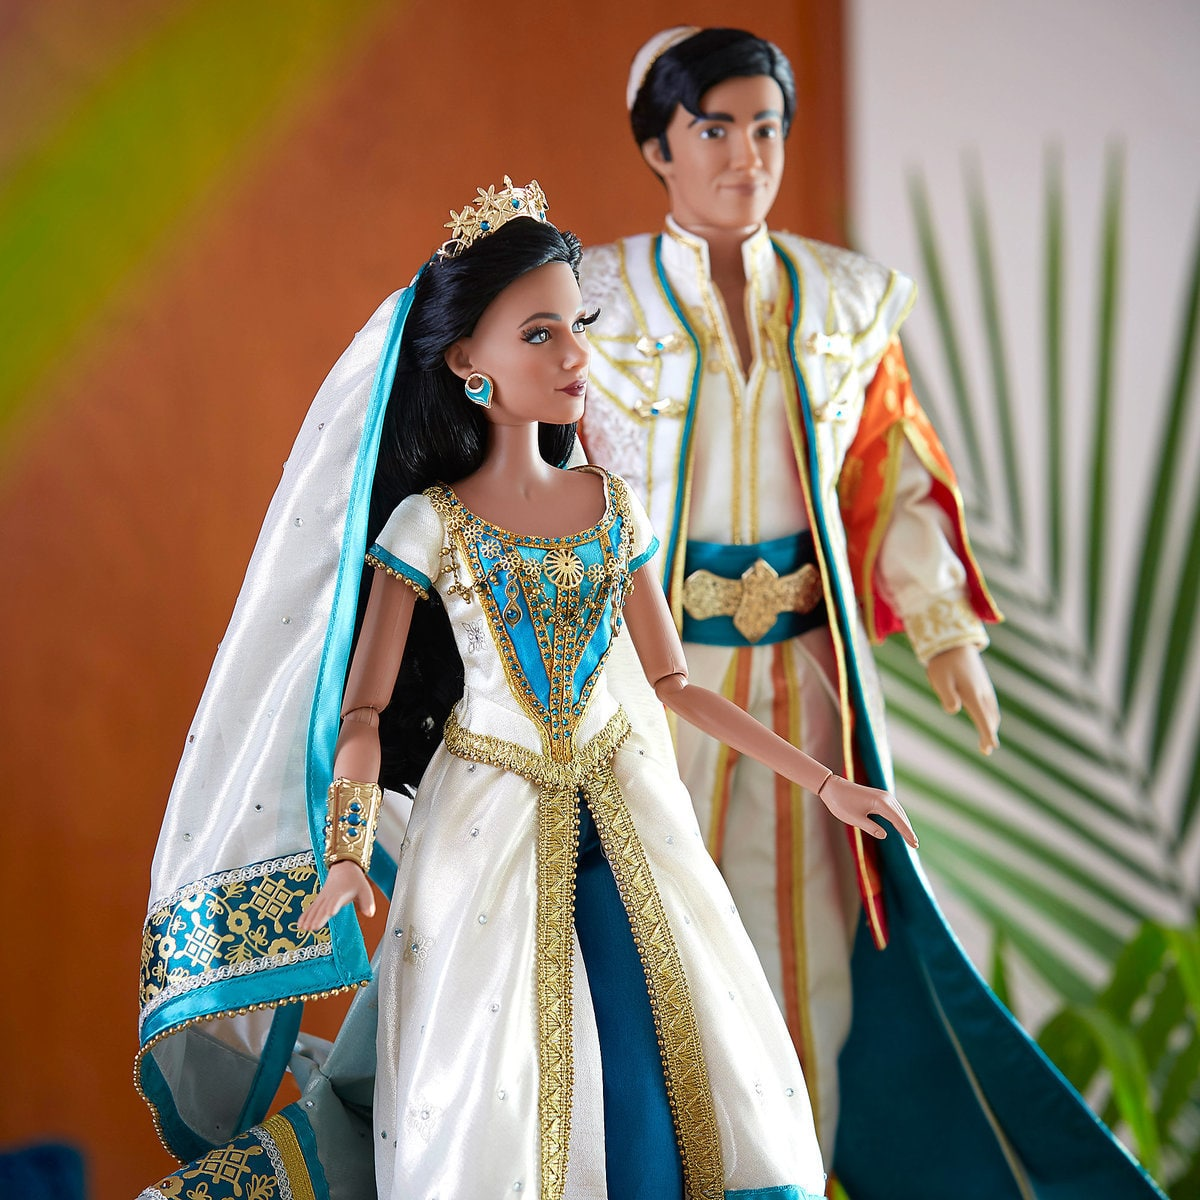 Disney Wedding Dresses 2019: Limited Edition Aladdin Dolls Out Now